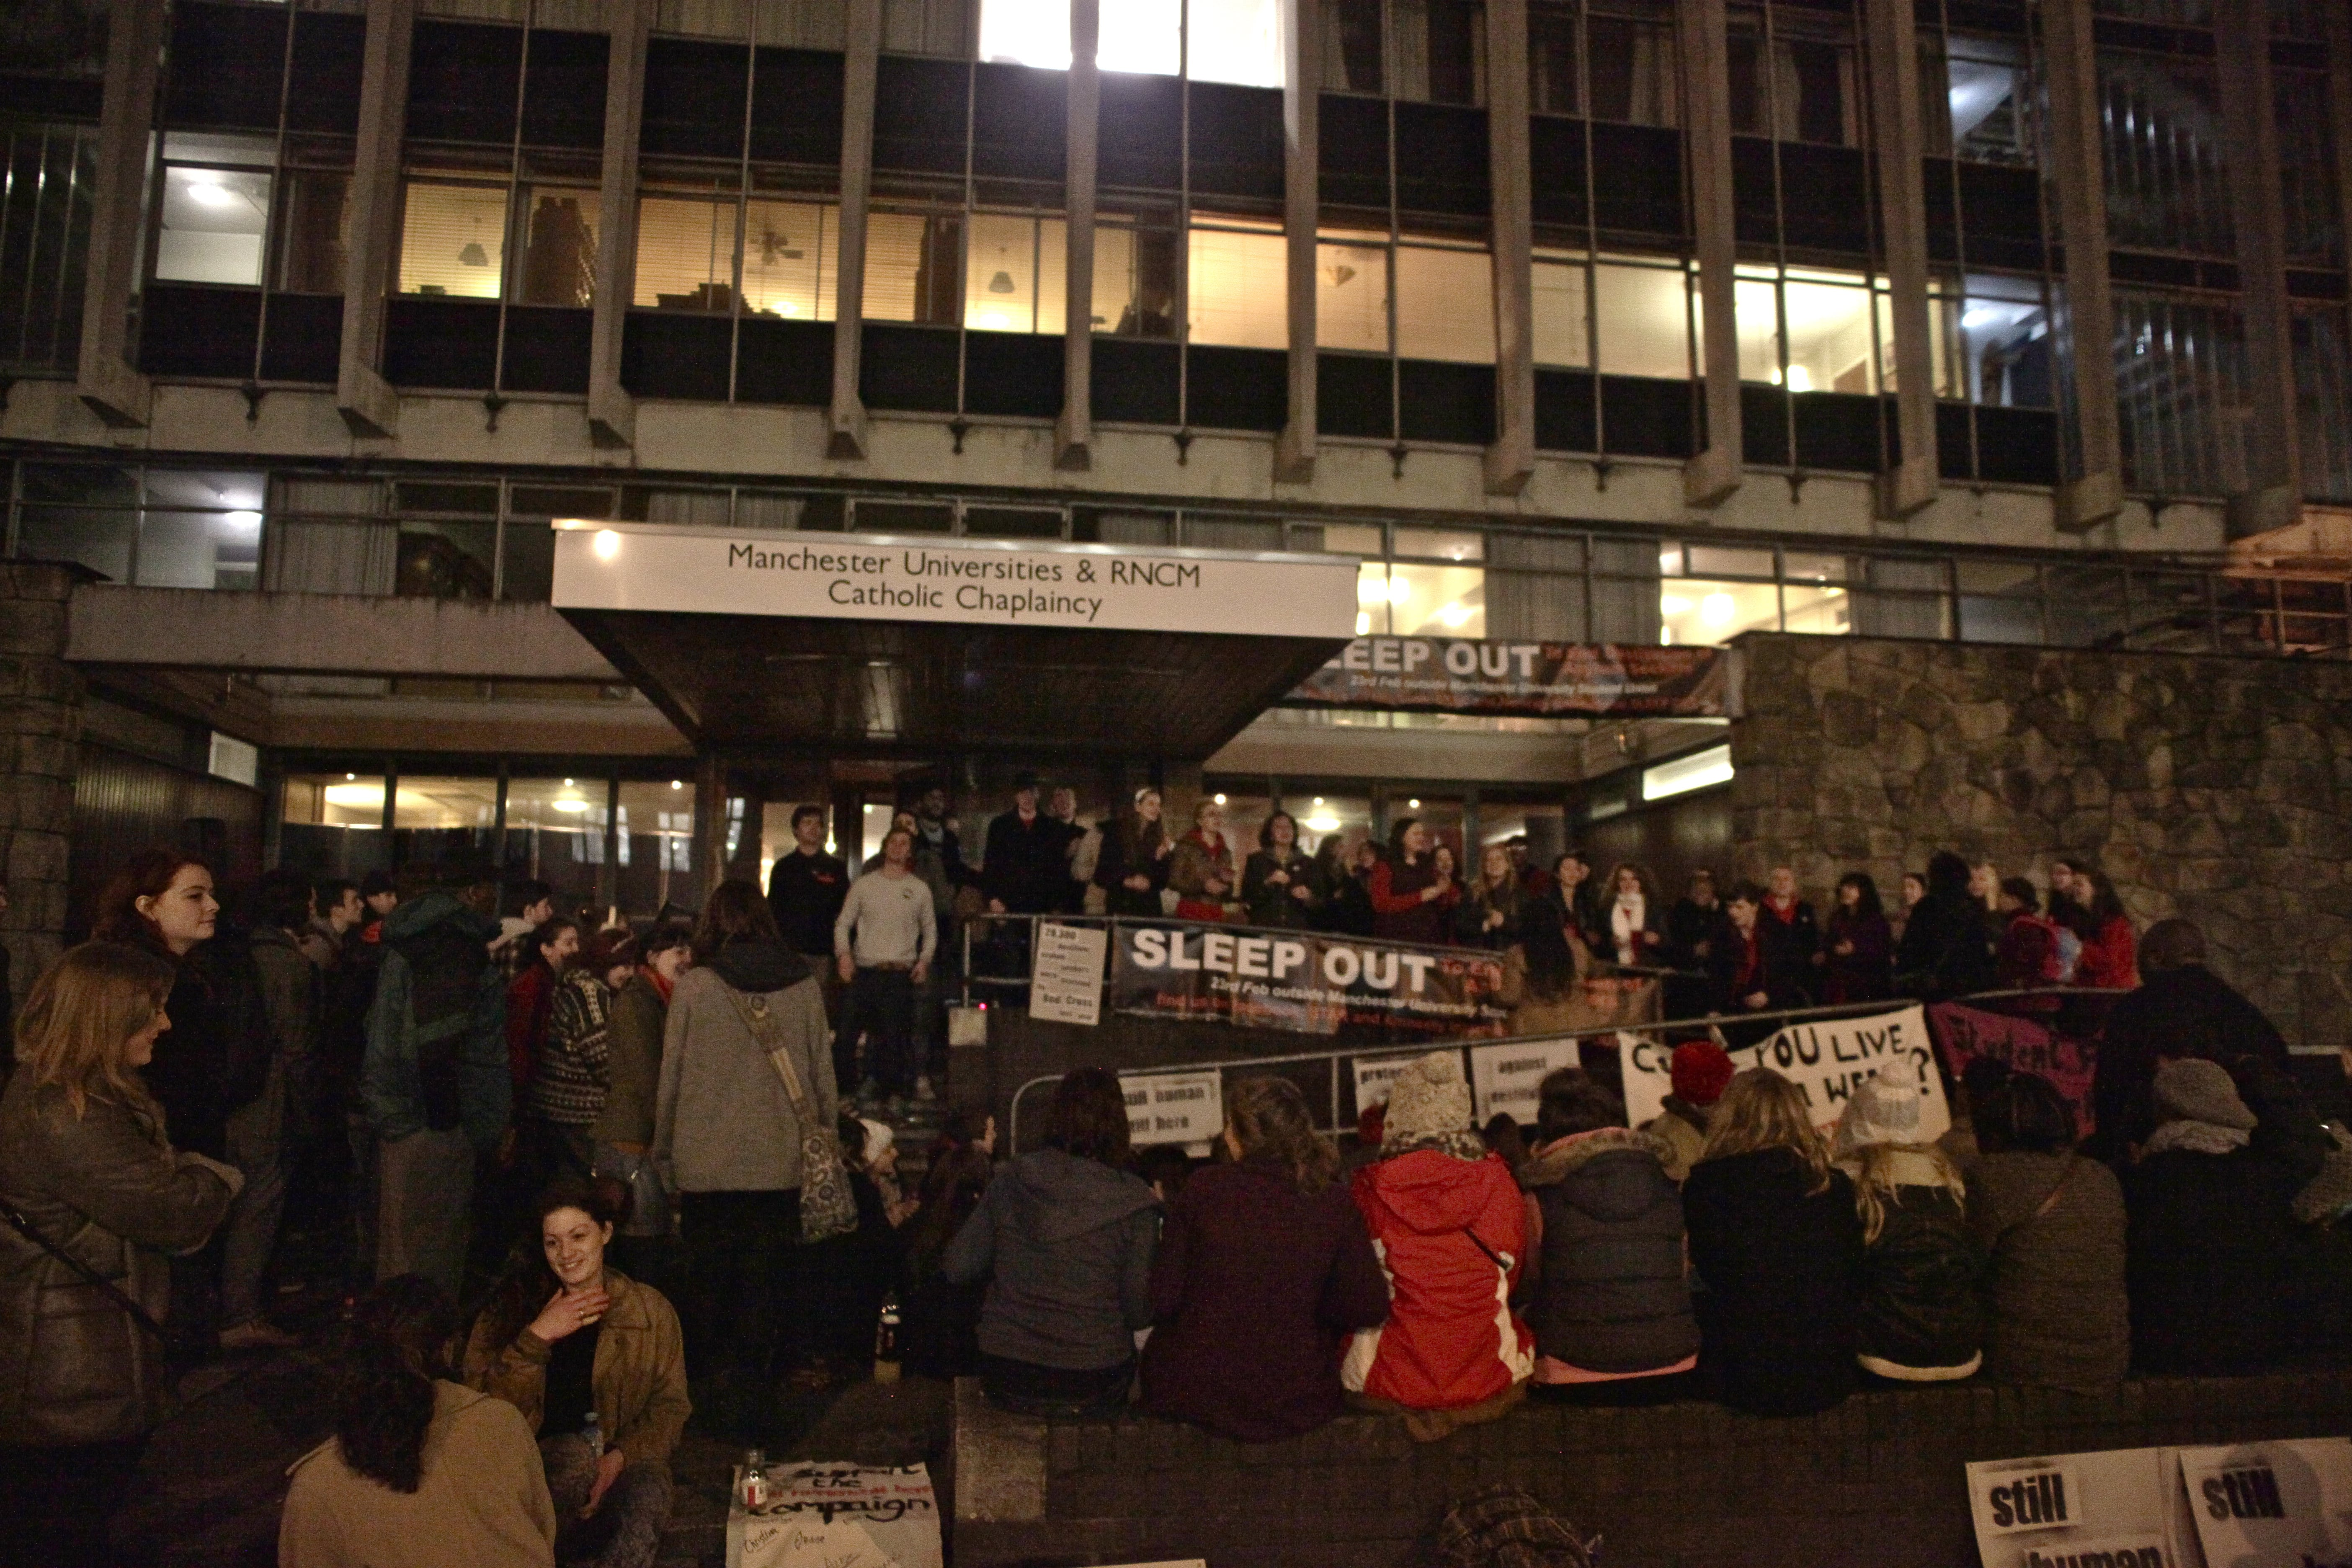 Over 120 campaigners slept rough for the night to protest against the destitution faced by asylum seekers. Photo: NIck Whiting